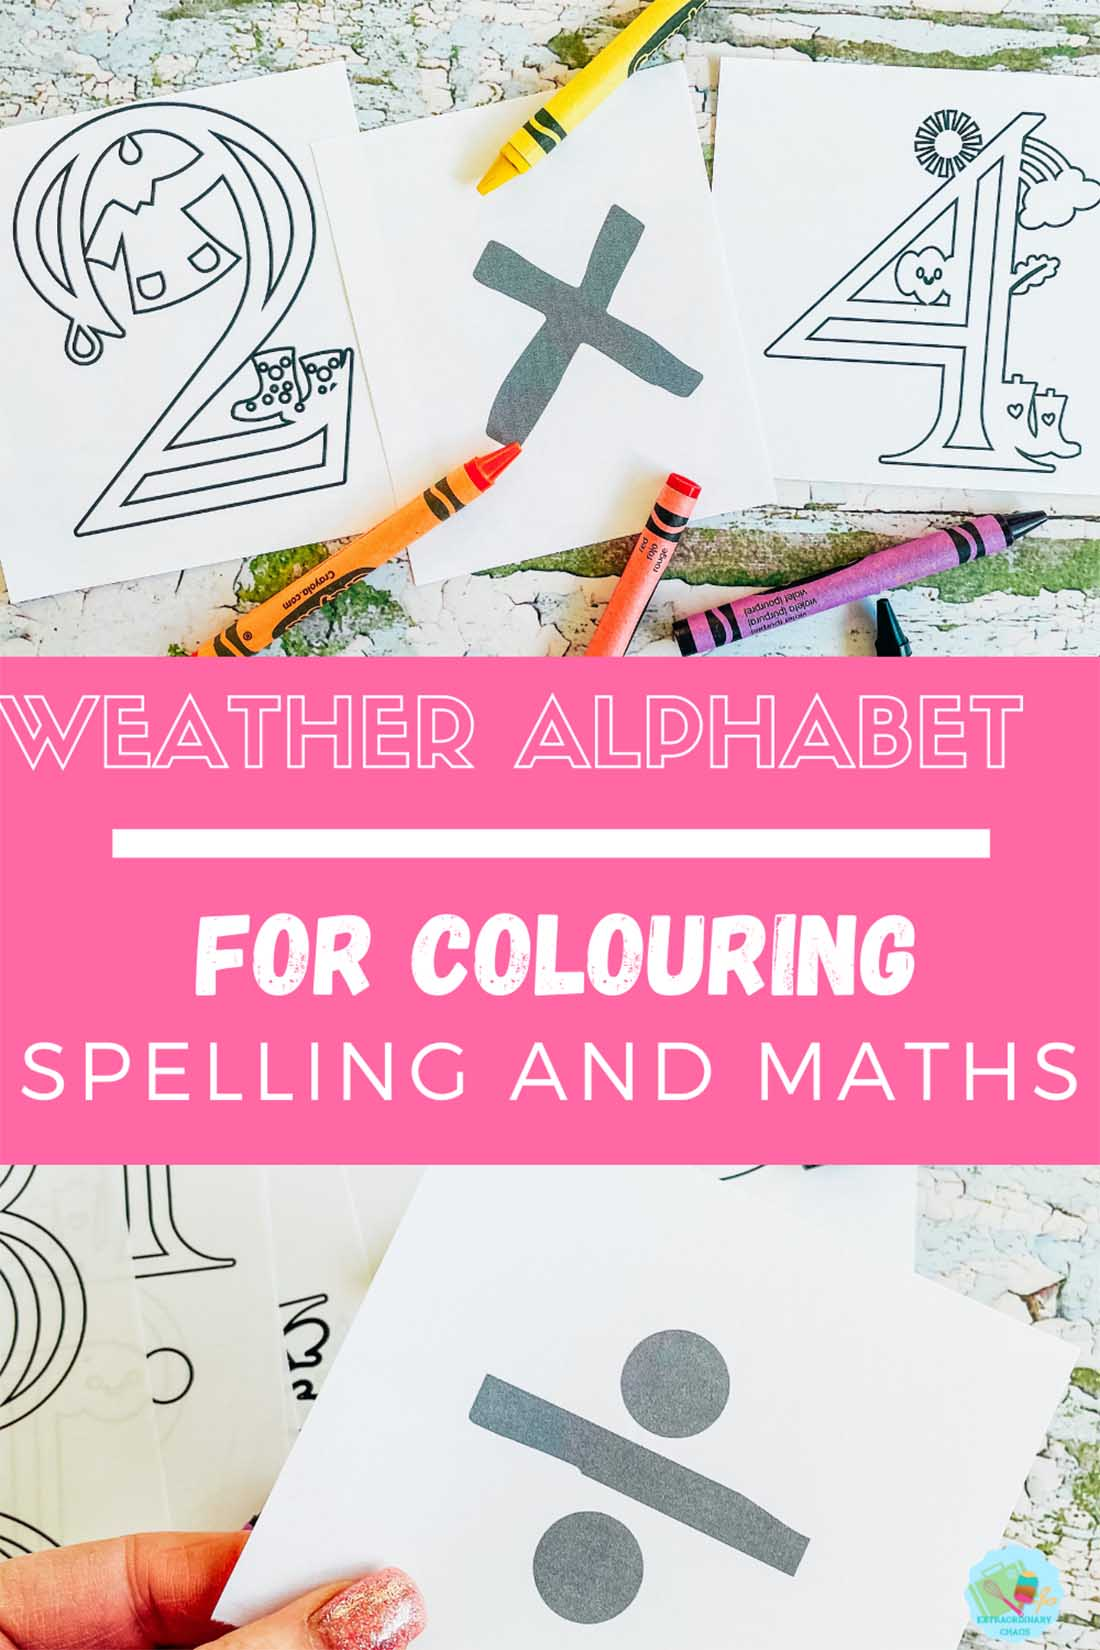 printable weather alphabet for colouring spelling and maths for home school with kids